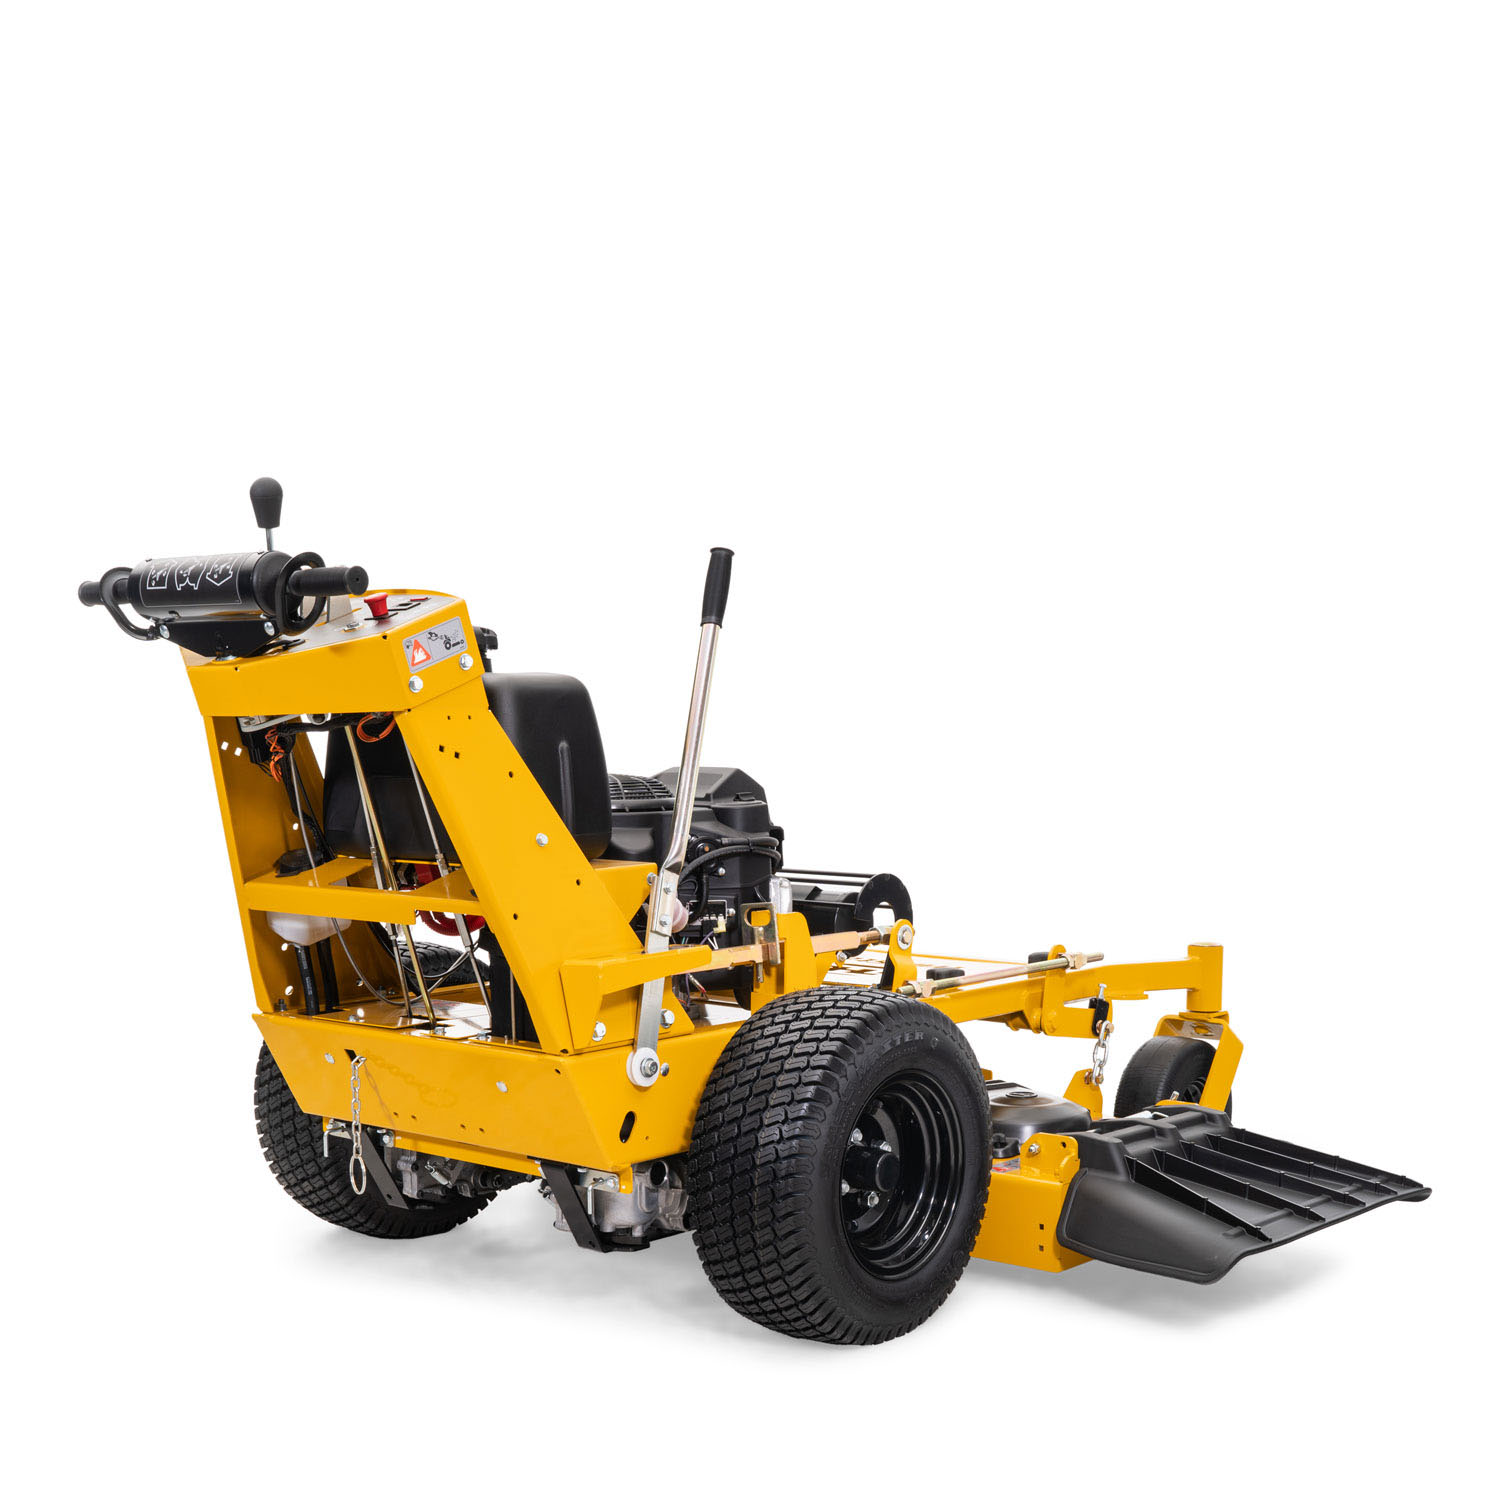 Image of the rear three quarters of a yellow walk-behind mower